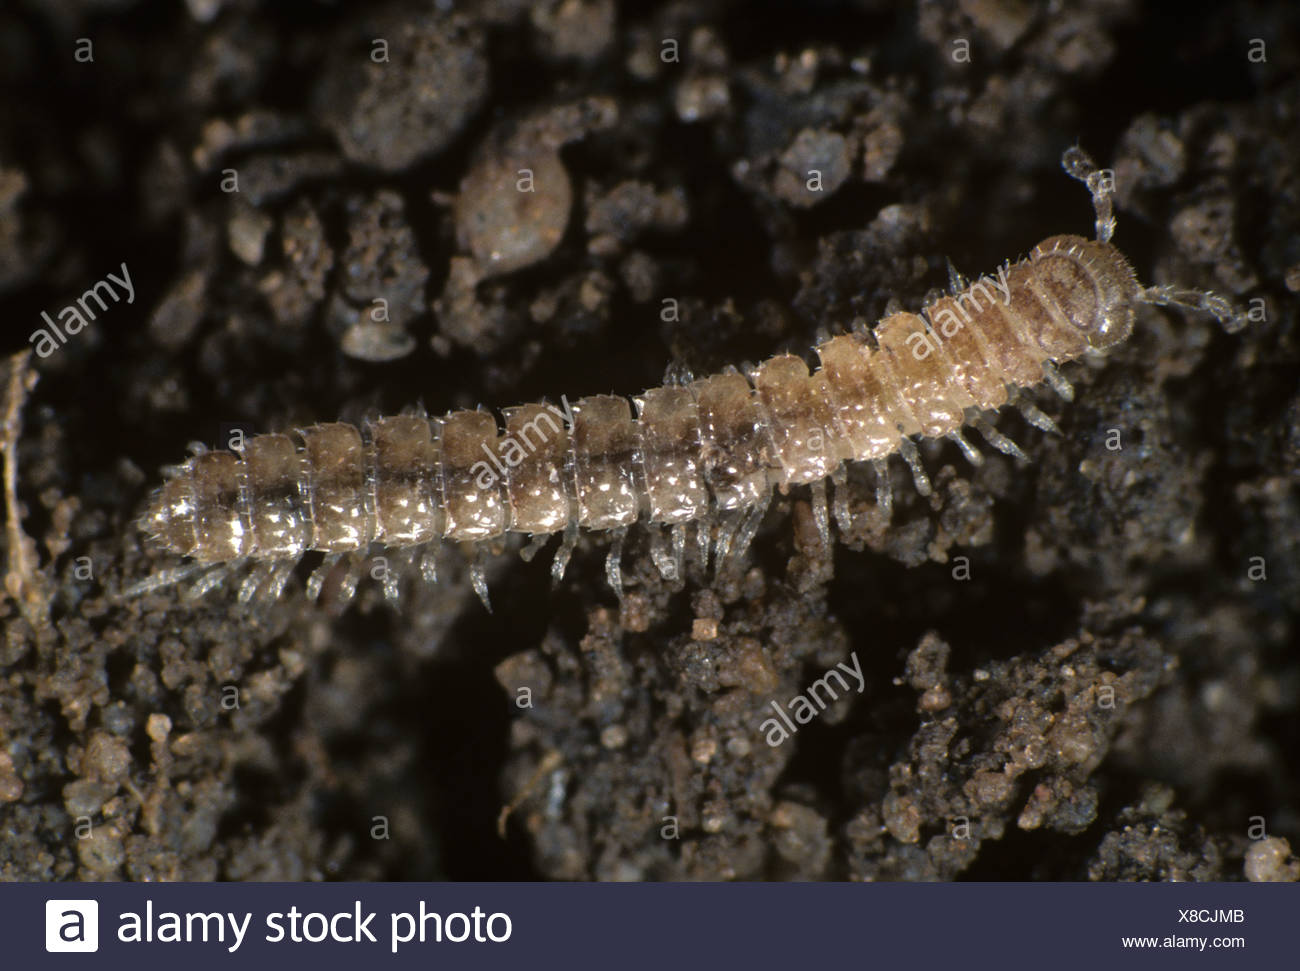 Millipede stock photos millipede stock images alamy for Soil zoology